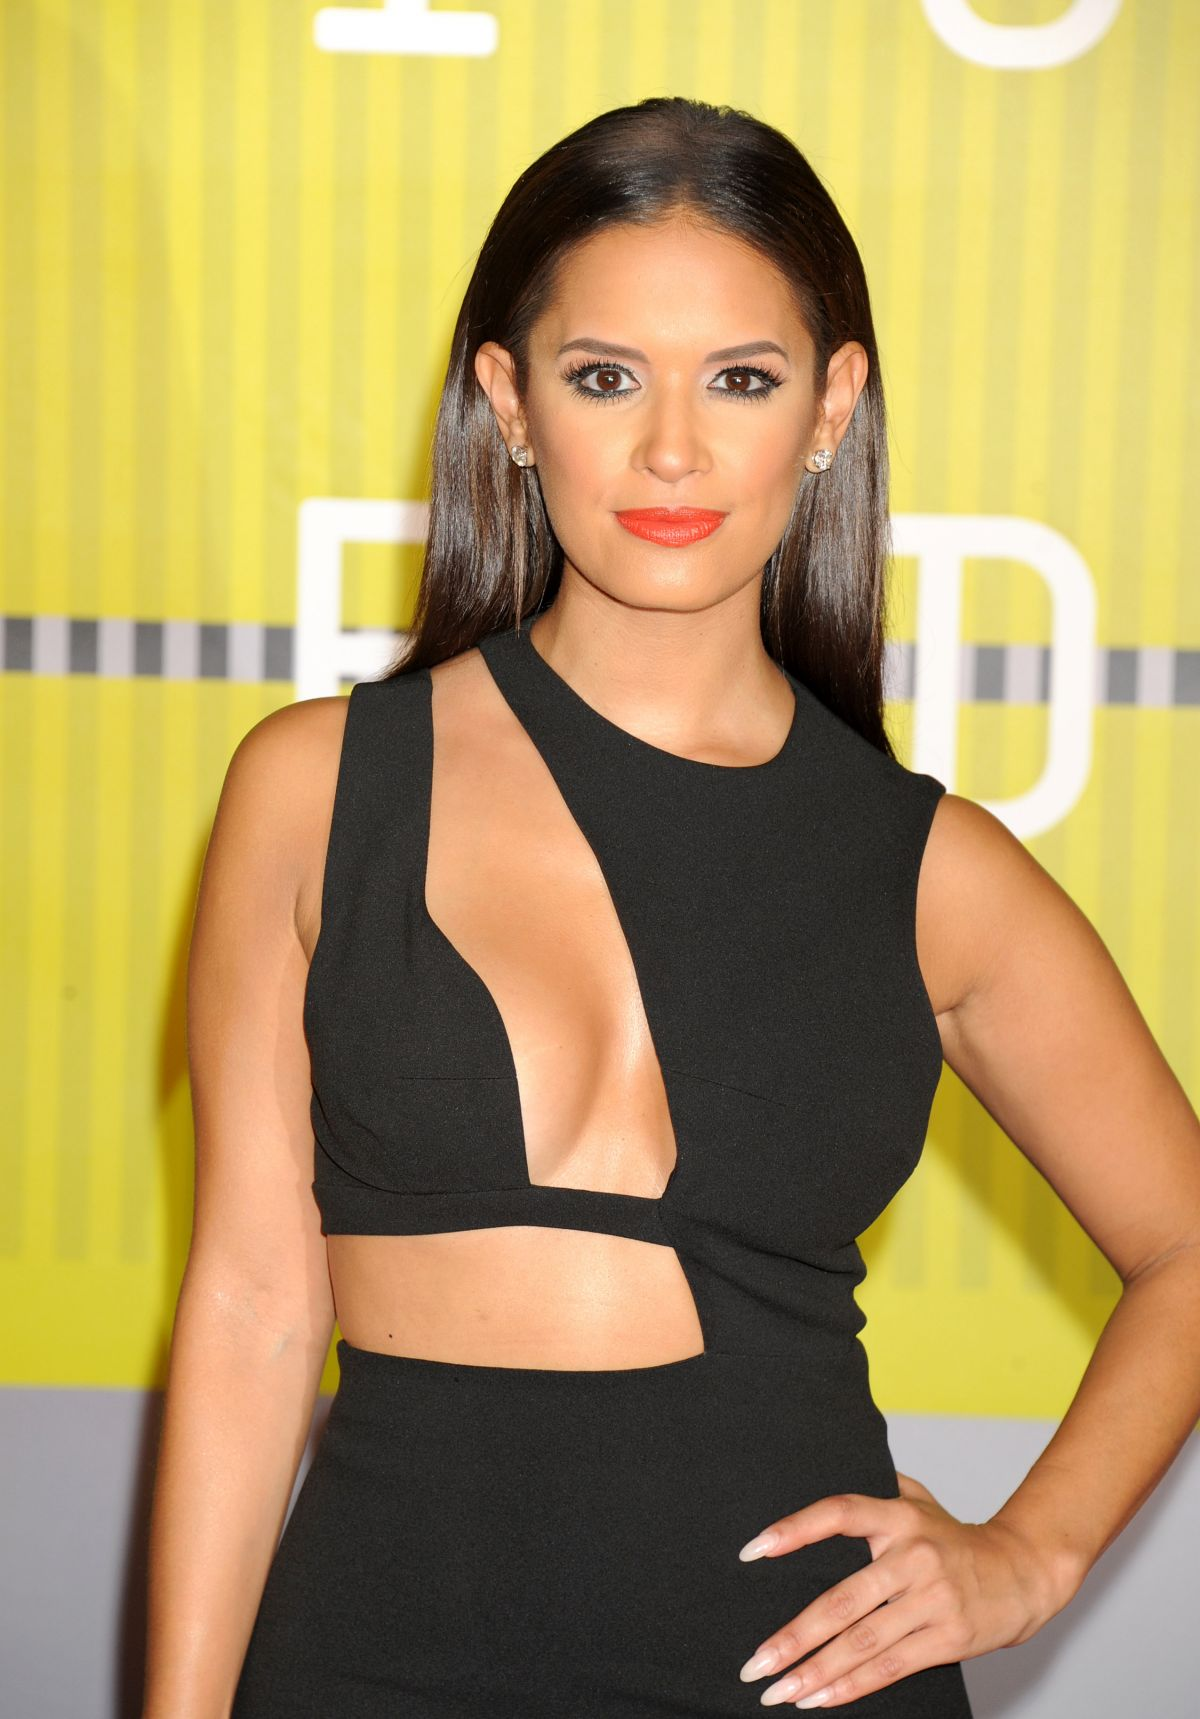 ROCSI DIAZ at MTV Video Music Awards 2015 in Los Angeles